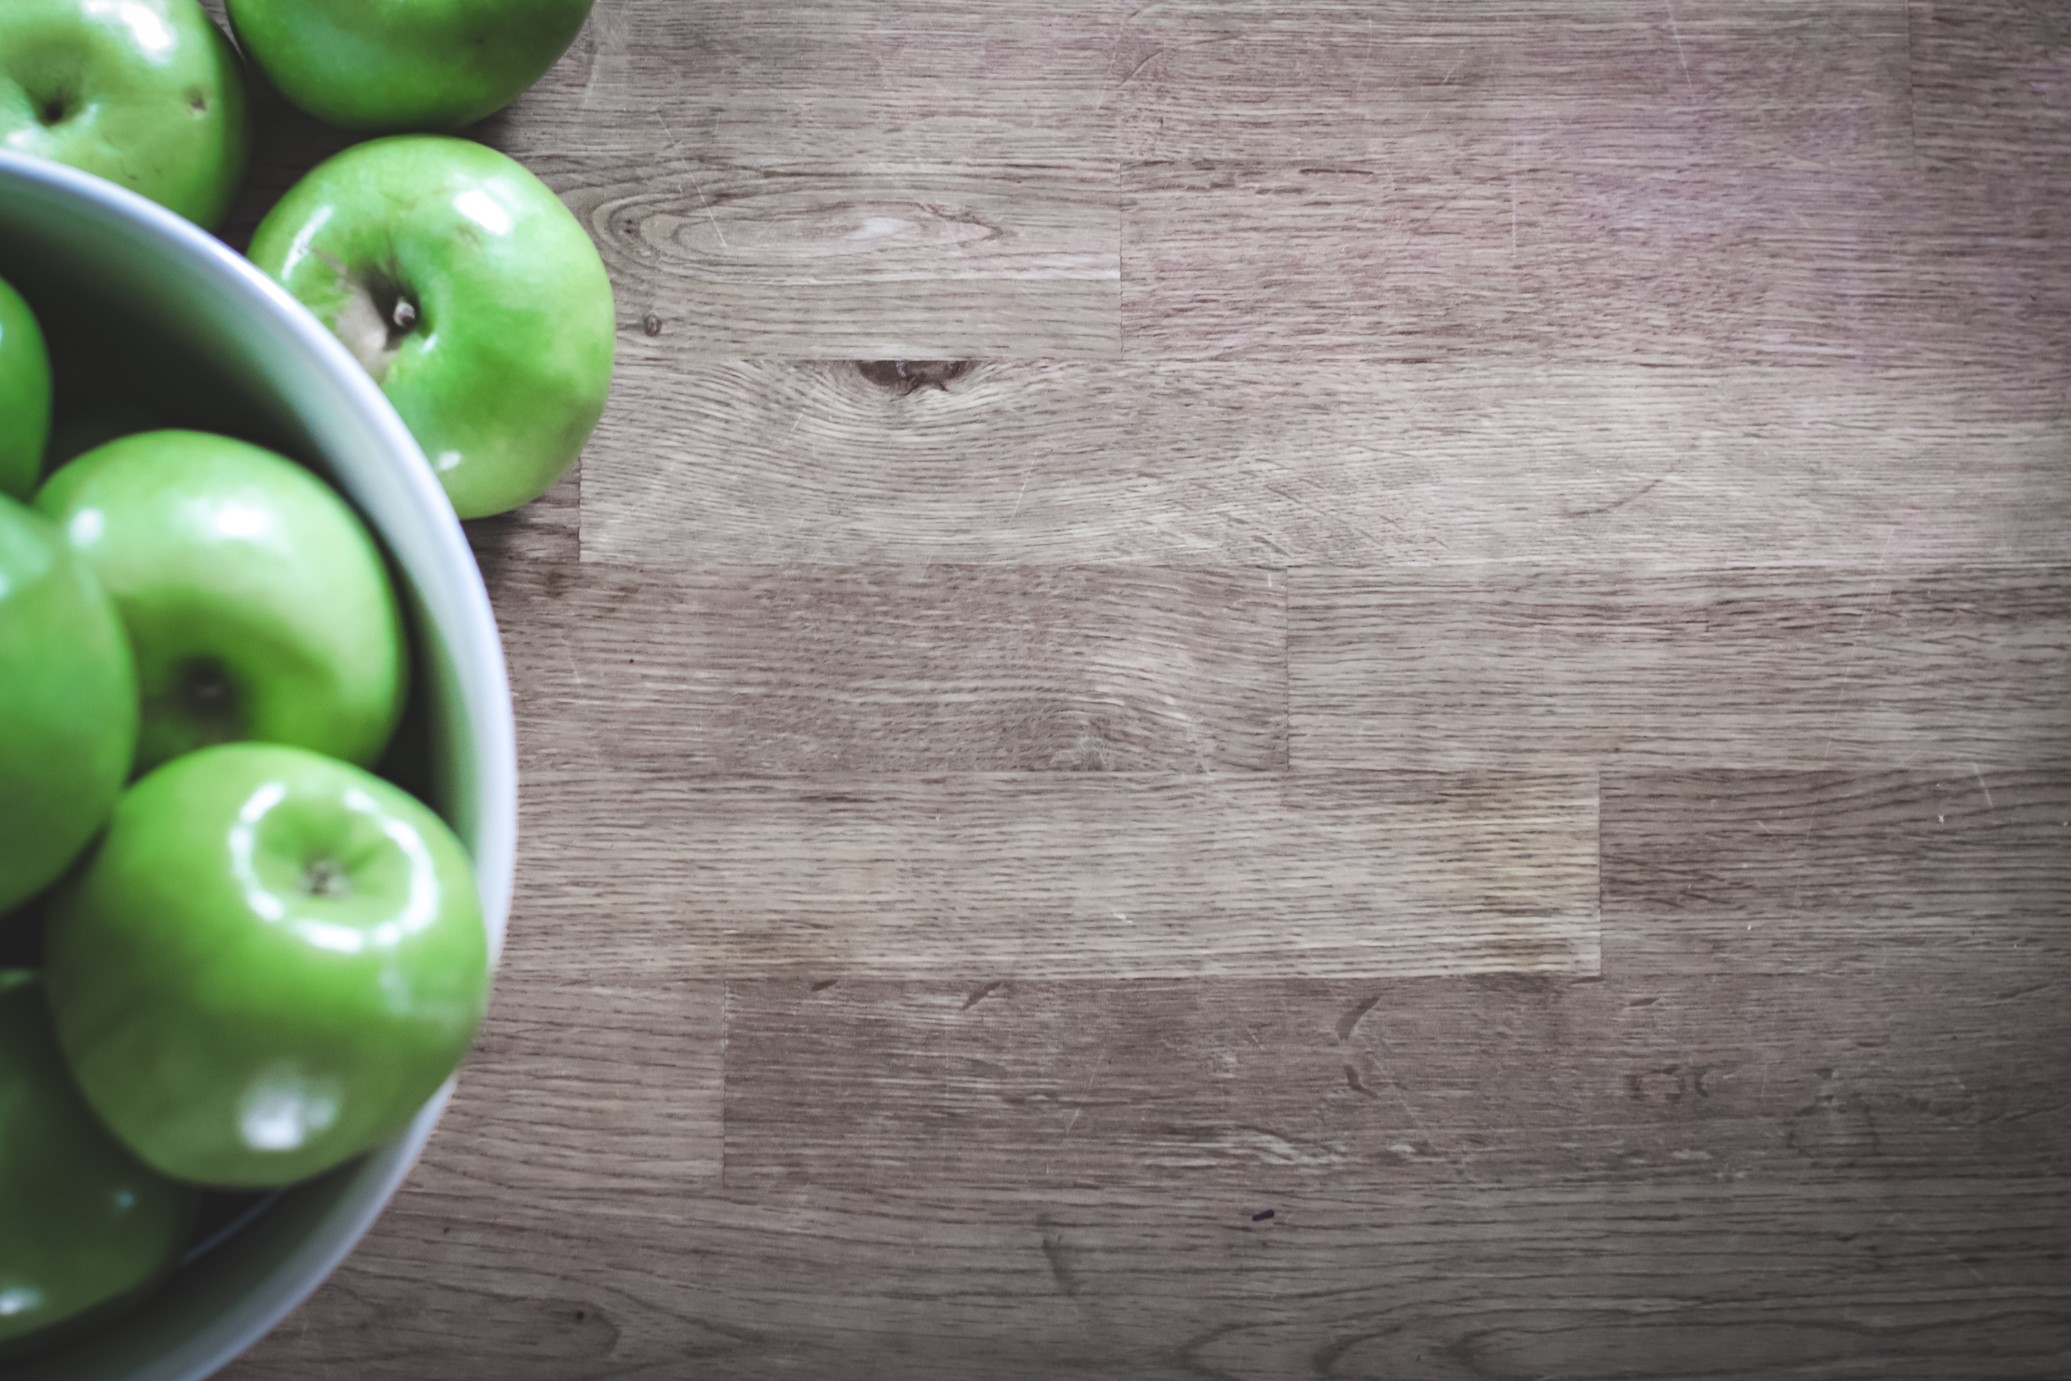 Counter or Fridge – Where Do Your Fruits and Veggies Go?